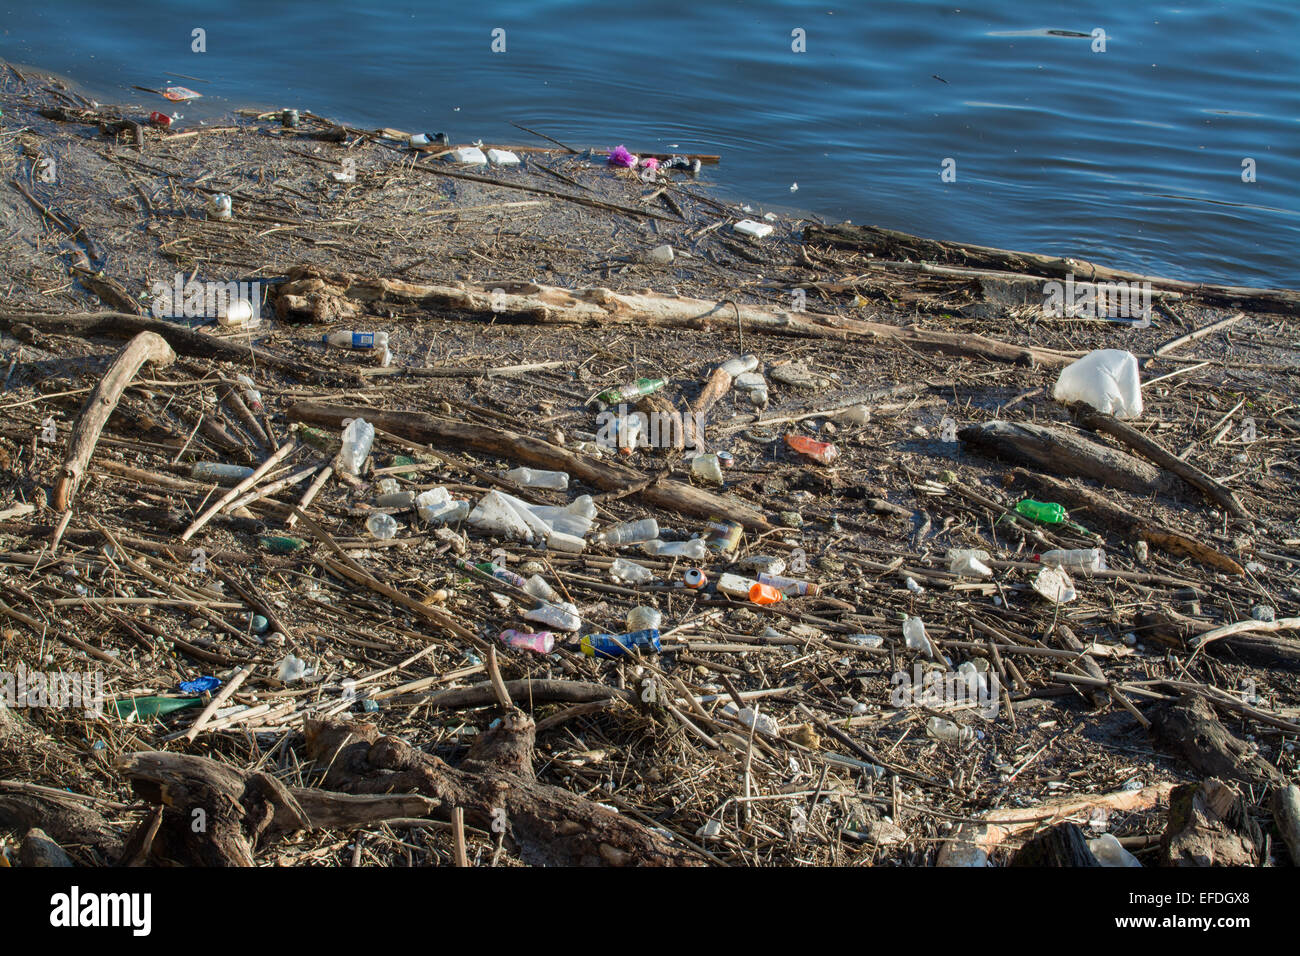 GLASGOW, SCOTLAND - 1 FEBRUARY 2015: Plastic debris and rubbish on the banks of the River Clyde, Glasgow in the - Stock Image